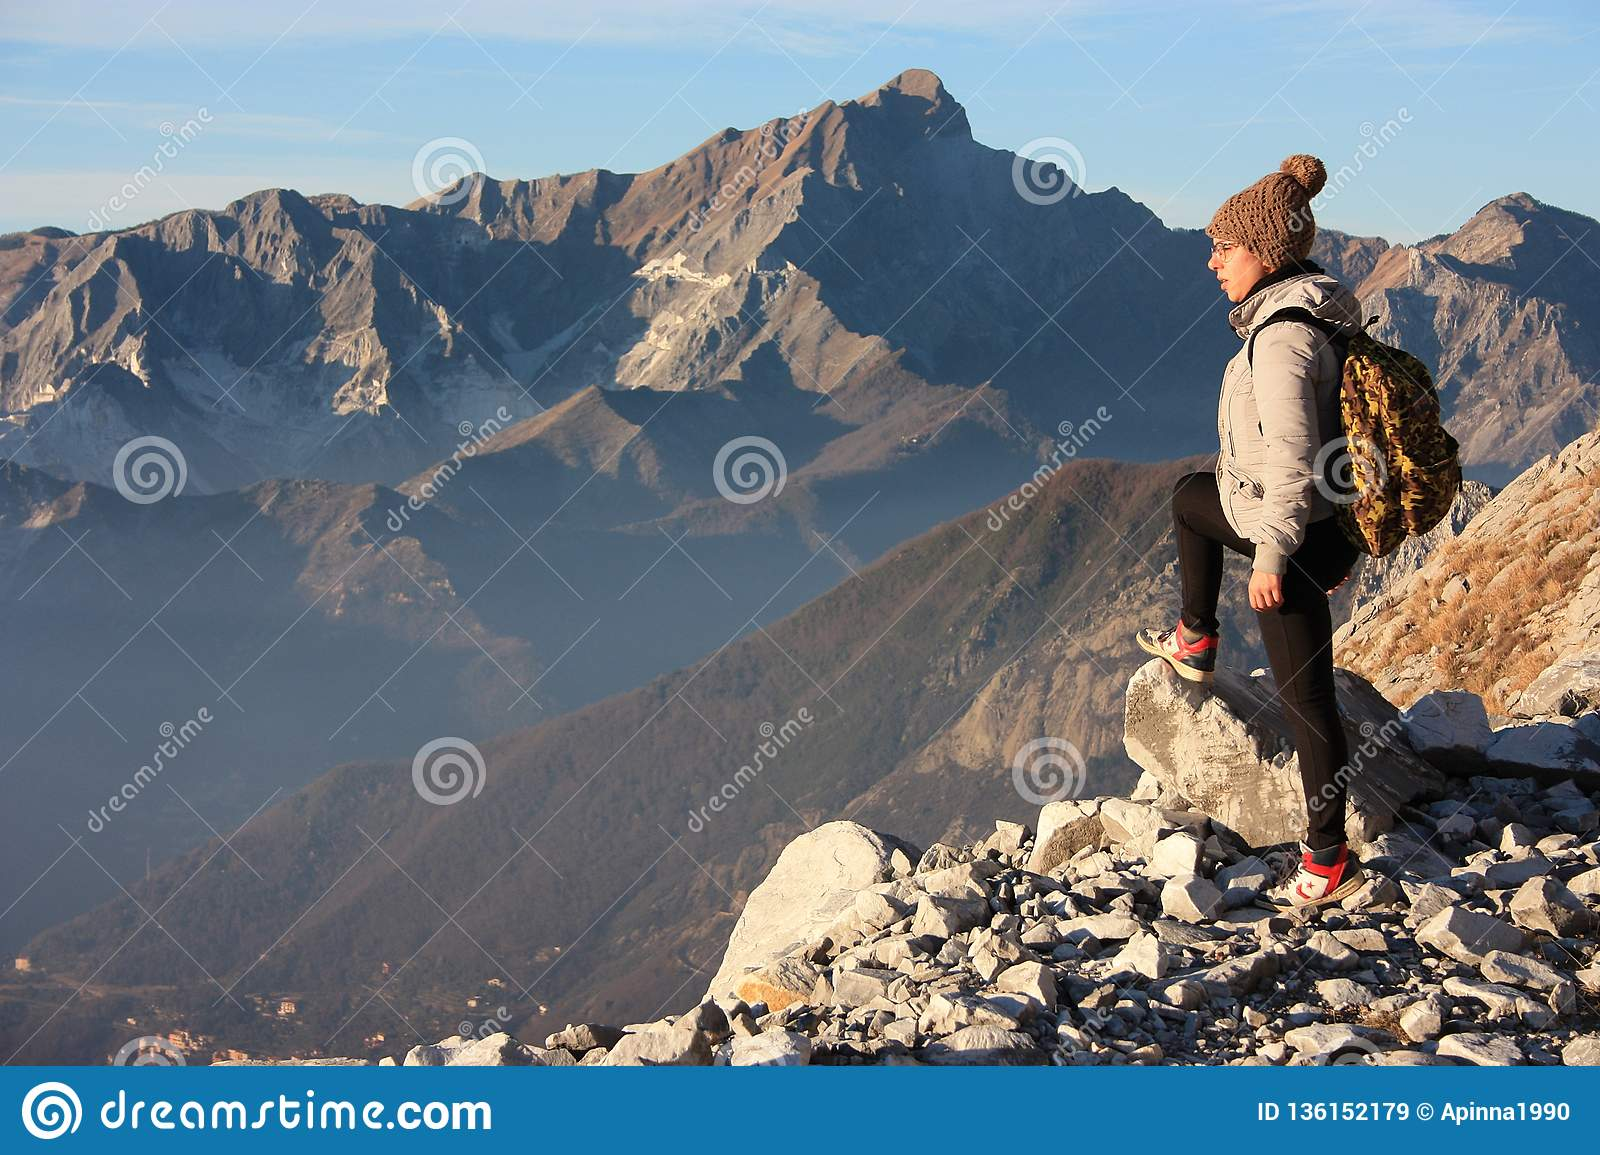 A young woman makes trekking on a mountain